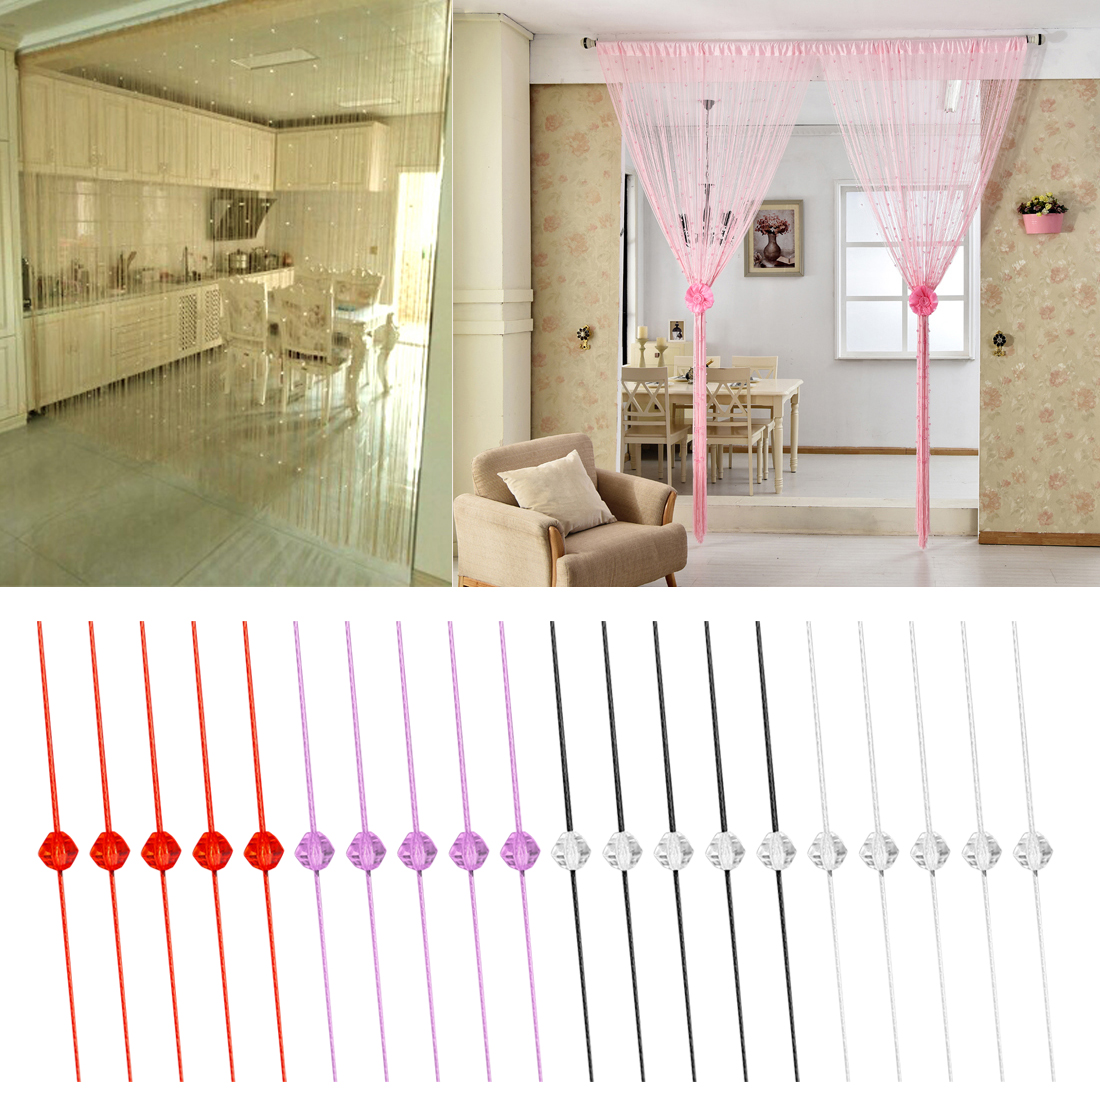 Us 6 27 5 Off Home Decorative String Crystal Curtain Moden Colorful Line Curtain Window Blind Vanlance Room Divider Sheer In Blinds Shades